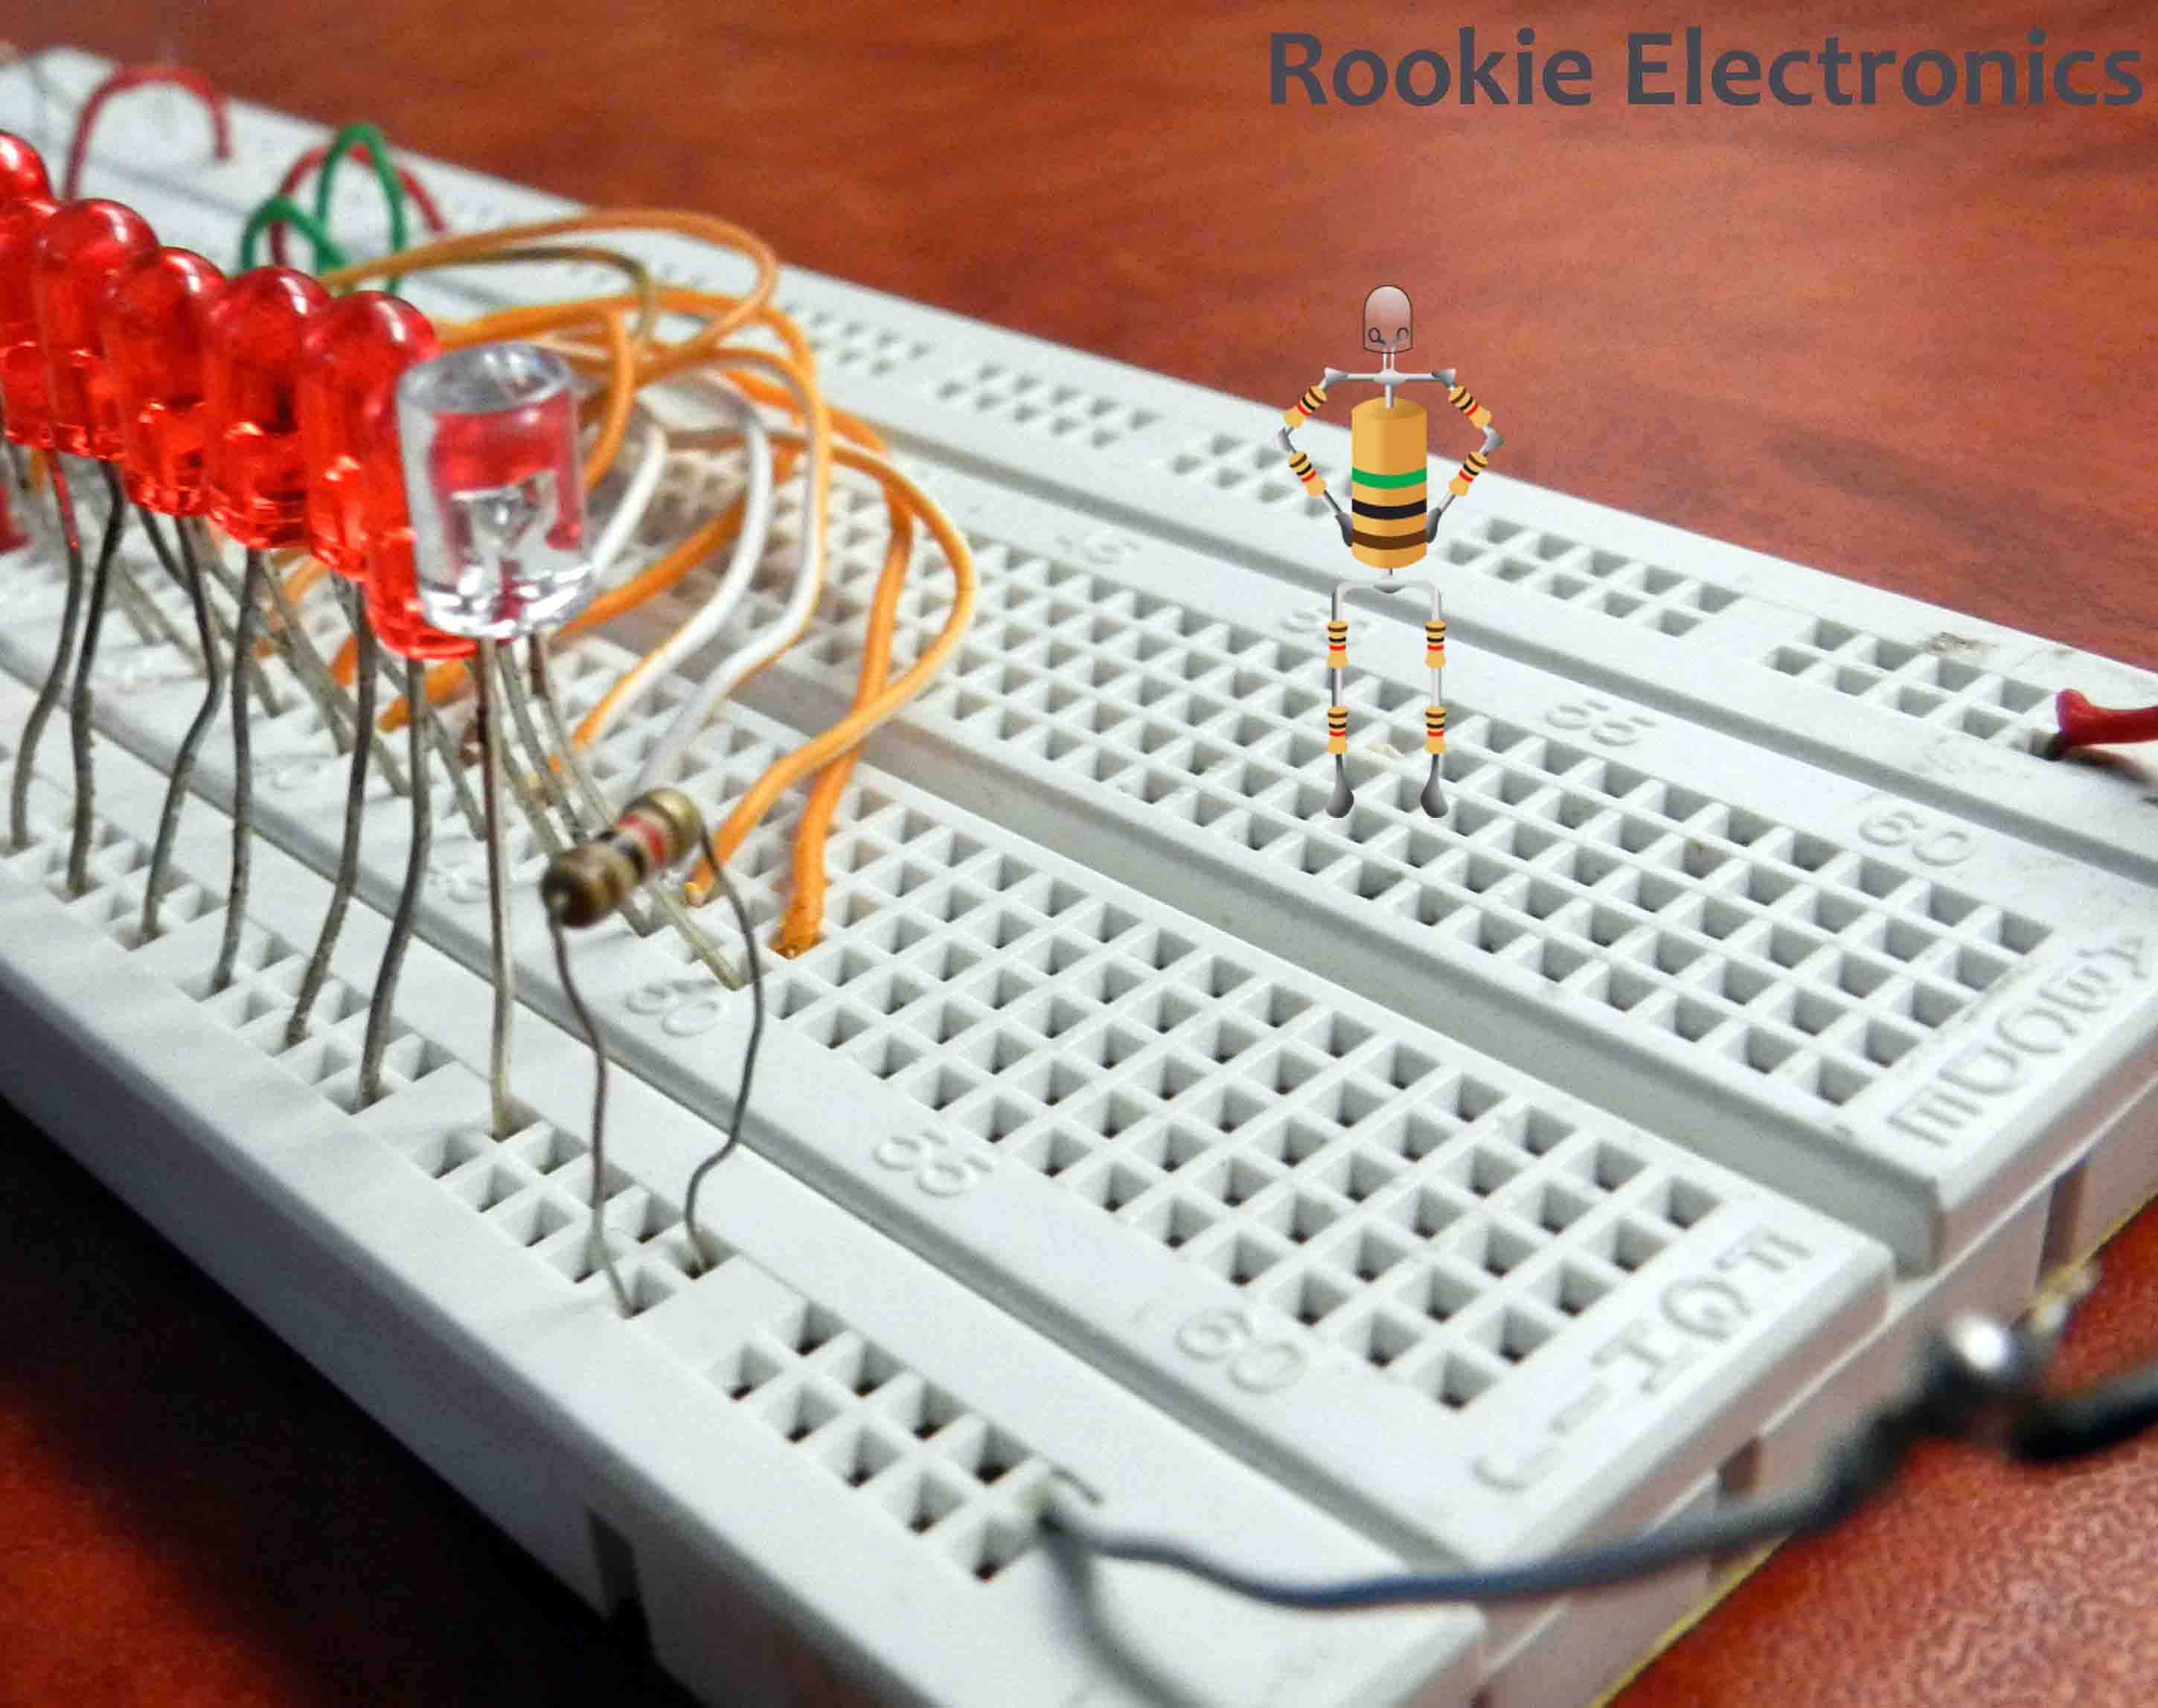 LED Chaser | Rookie Electronics | Electronics & Robotics Projects